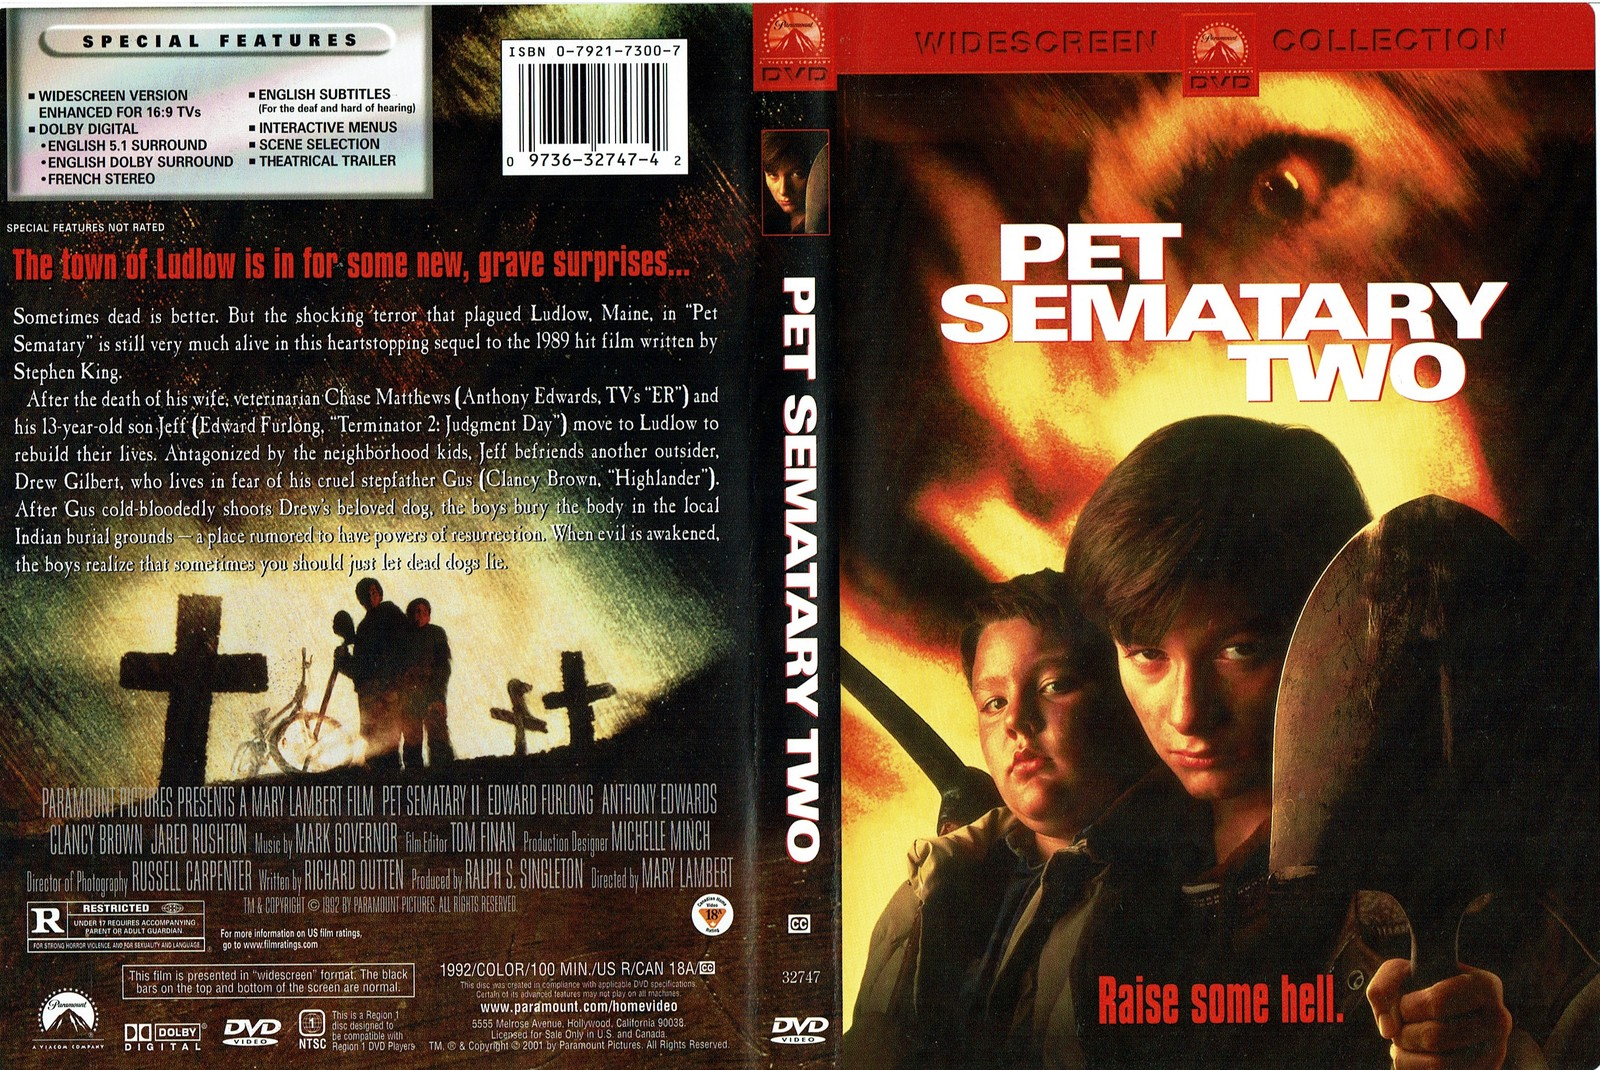 Pet Sematary Two, Raise Some Hell, DVD, Widescreen, 2001